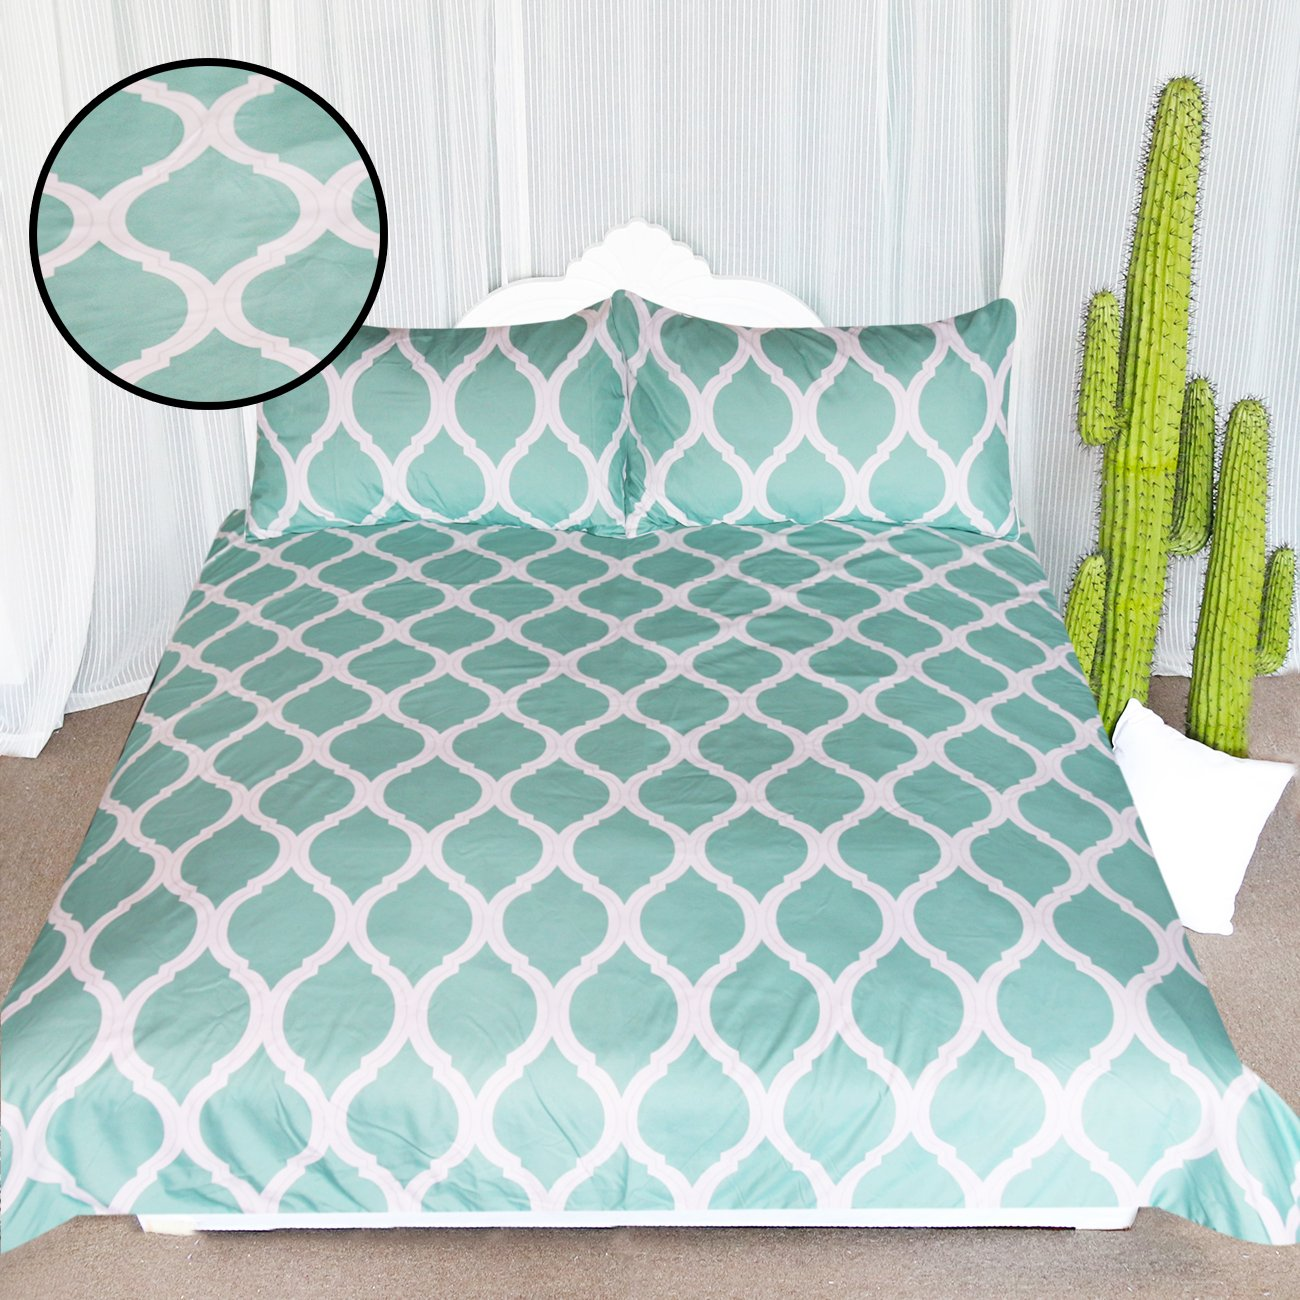 ARIGHTEX Spa Blue Printed Comforter Cover Stylish Lattice Pattern 3 Piece Teen Bedding White Geometric Duvet Cover Set (Queen)